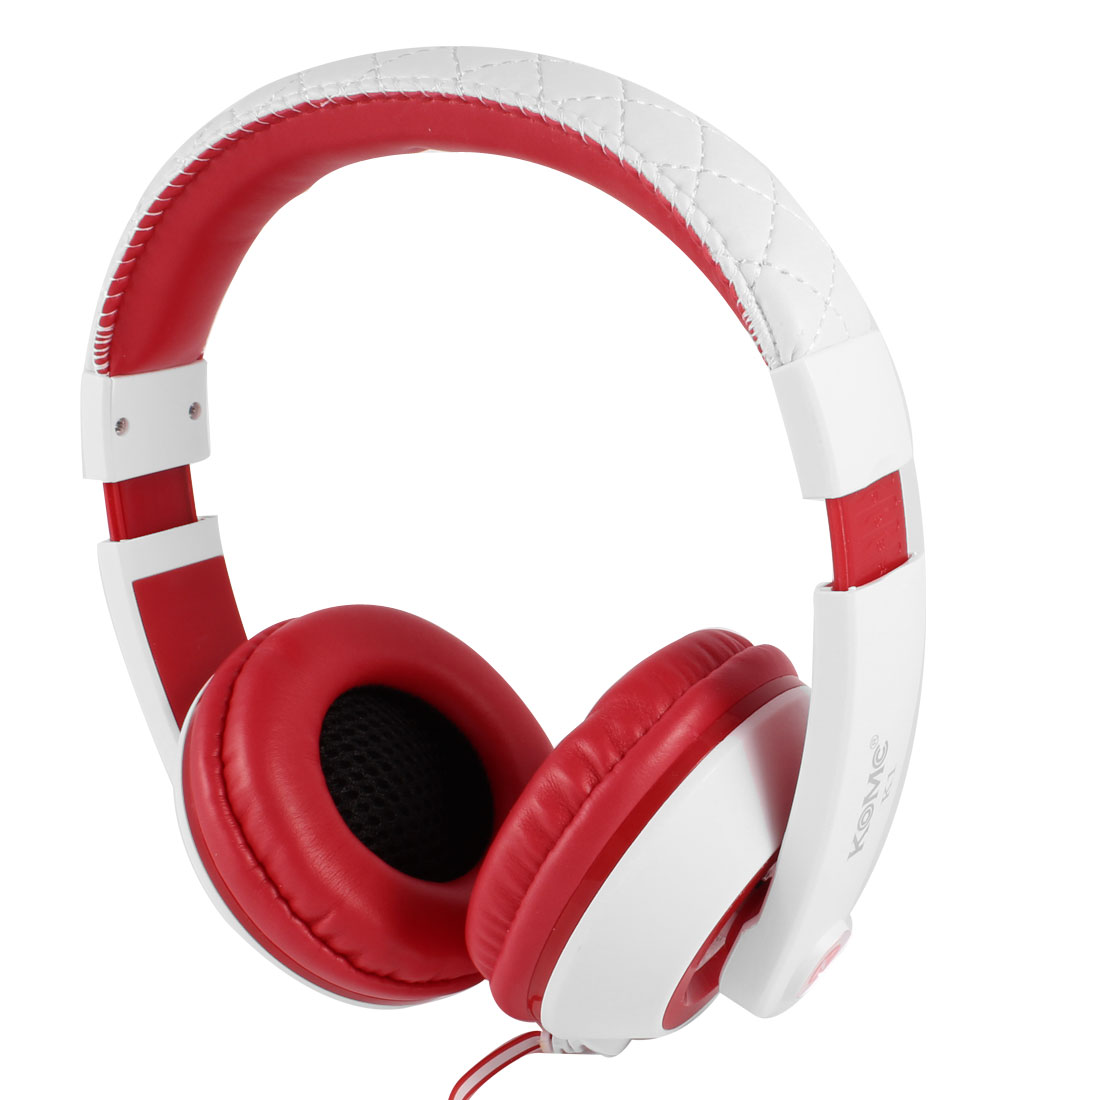 4.9ft Flat Cable Red Round Earpad PC Computer Headphone Headset 3.5mm Connector